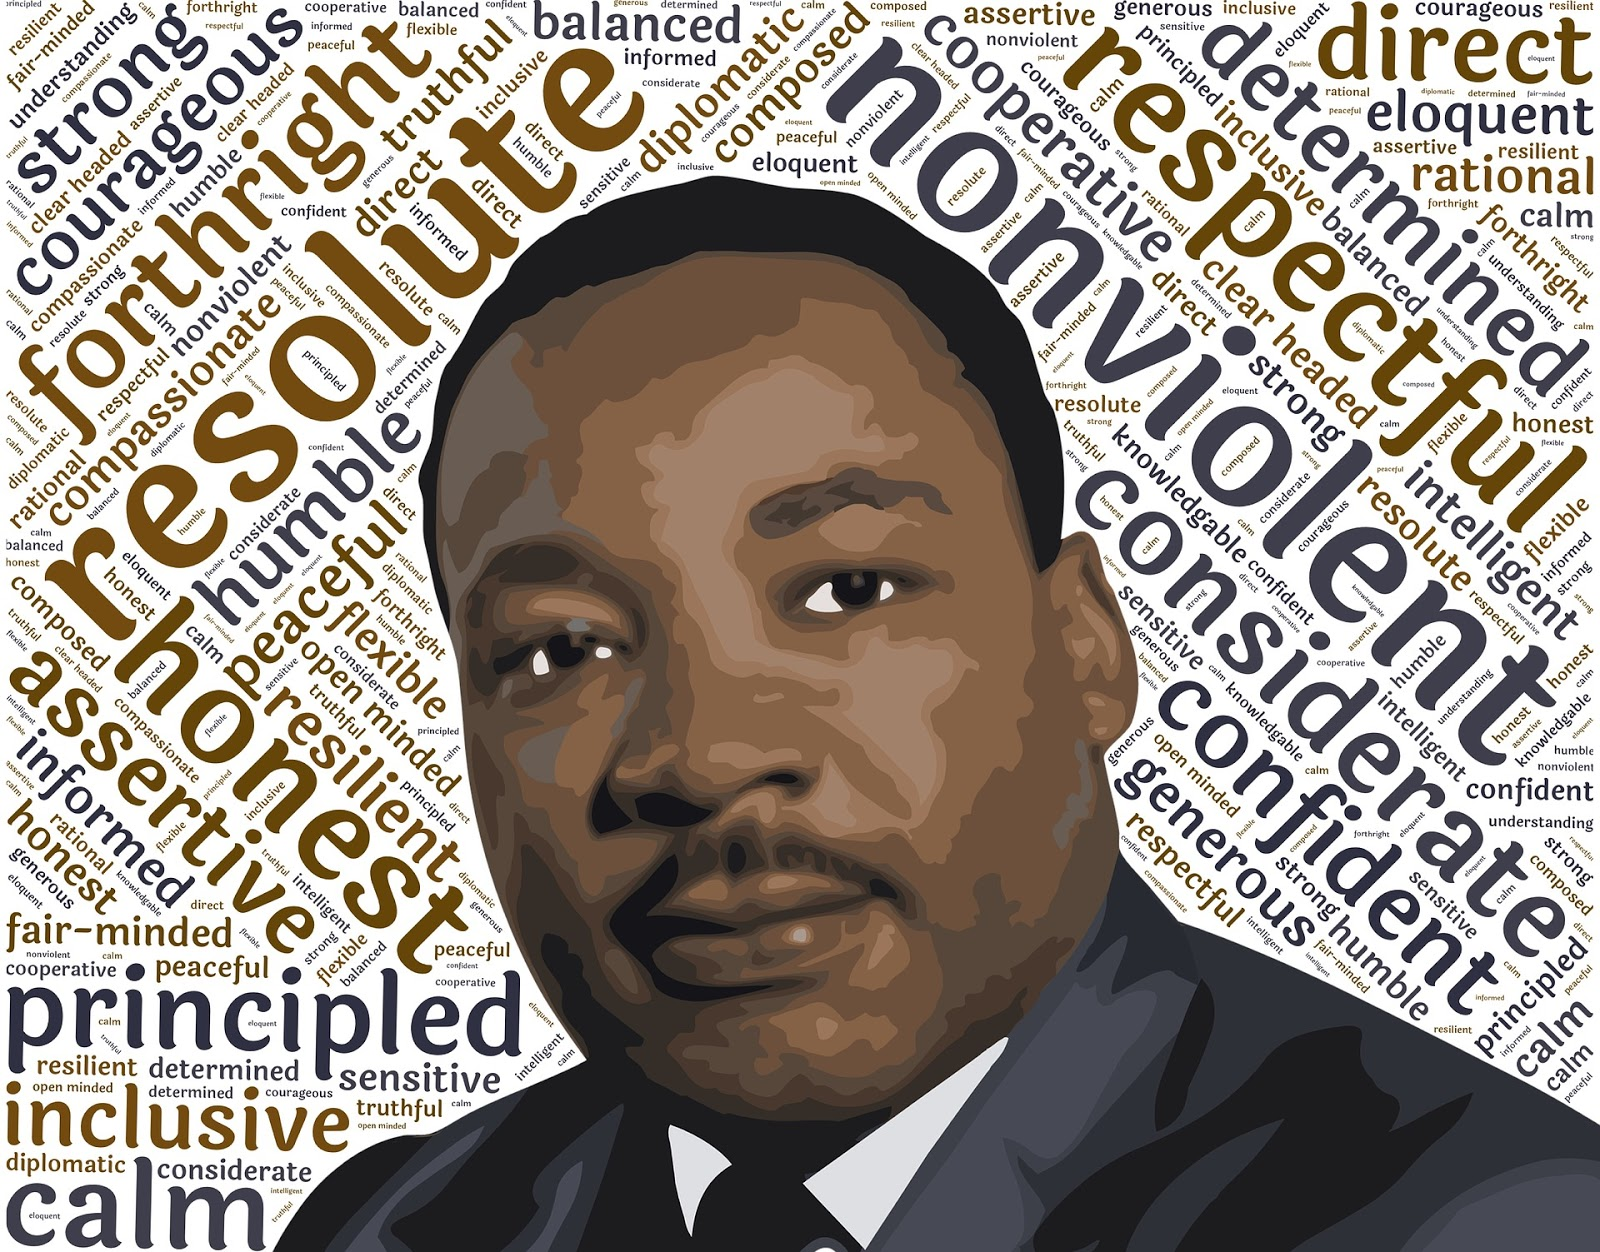 Images Of Martin Luther King Quotes 10 Inspiring Quotes Martin Luther King Jr Lijin'z Blog